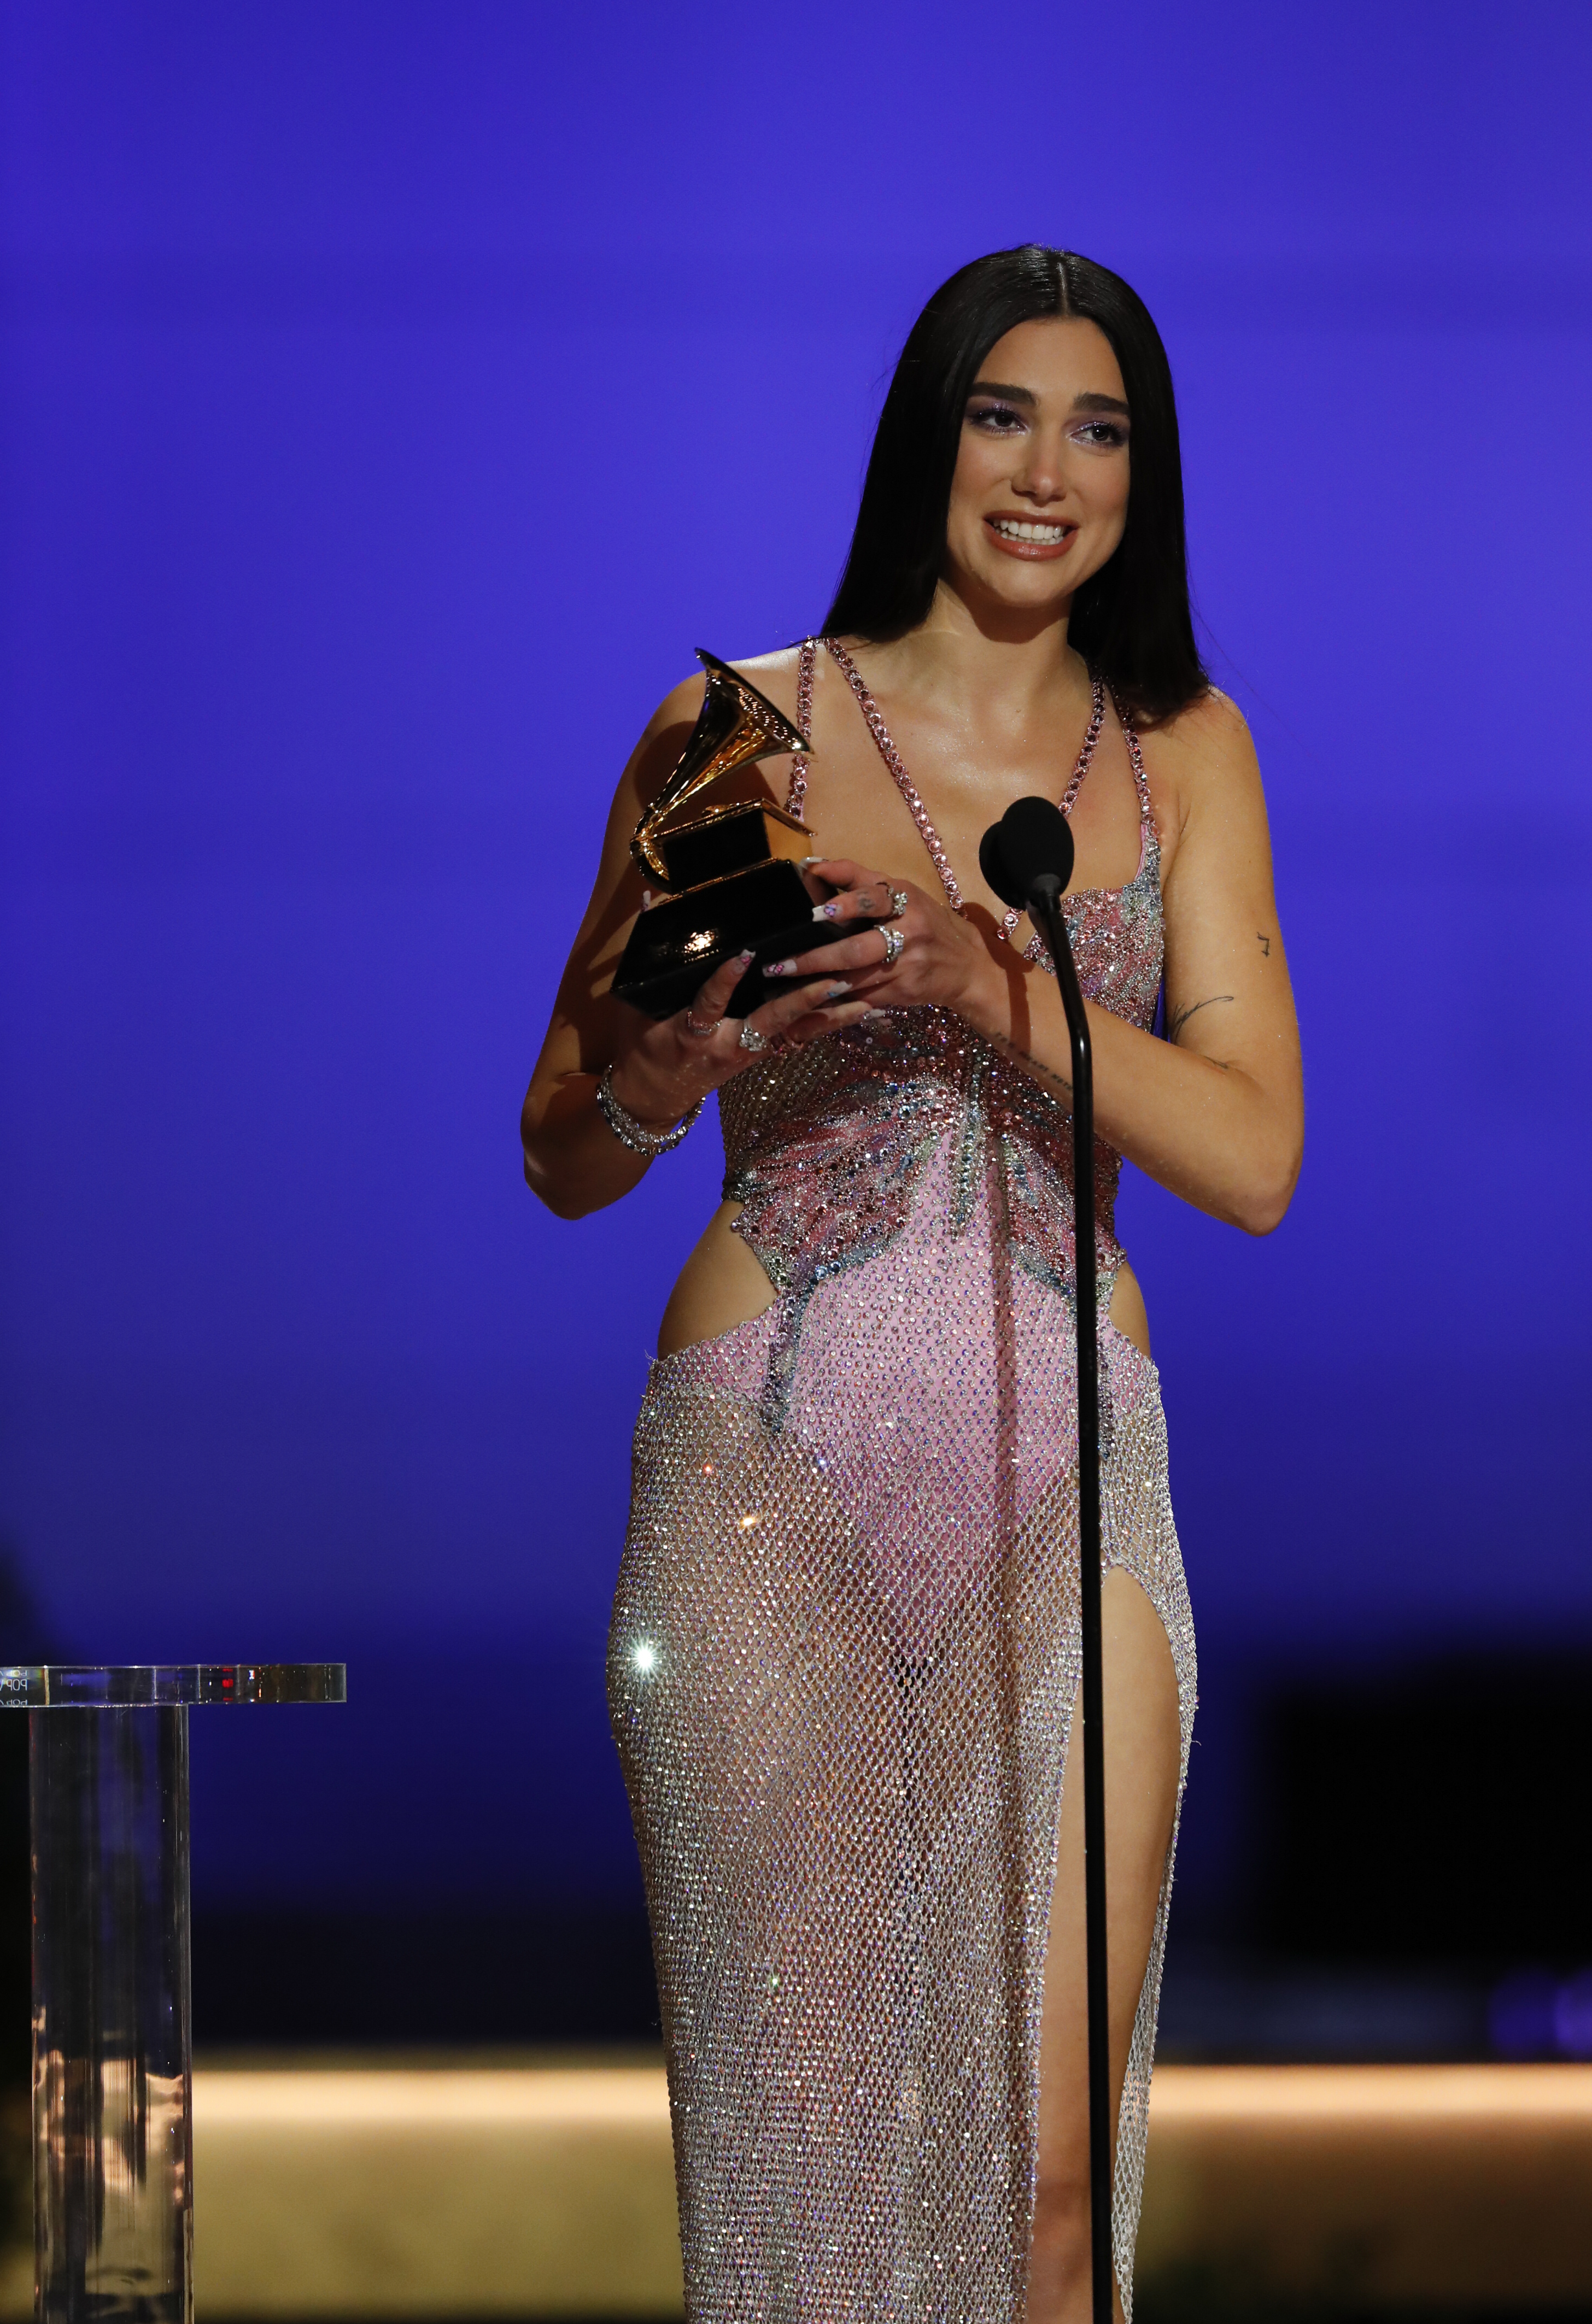 Dua Lipa wins the award for Best Pop Vocal at THE 63rd ANNUAL GRAMMY® AWARDS, broadcast live from the STAPLES Center in Los Angeles, Sunday, March 14, 2021